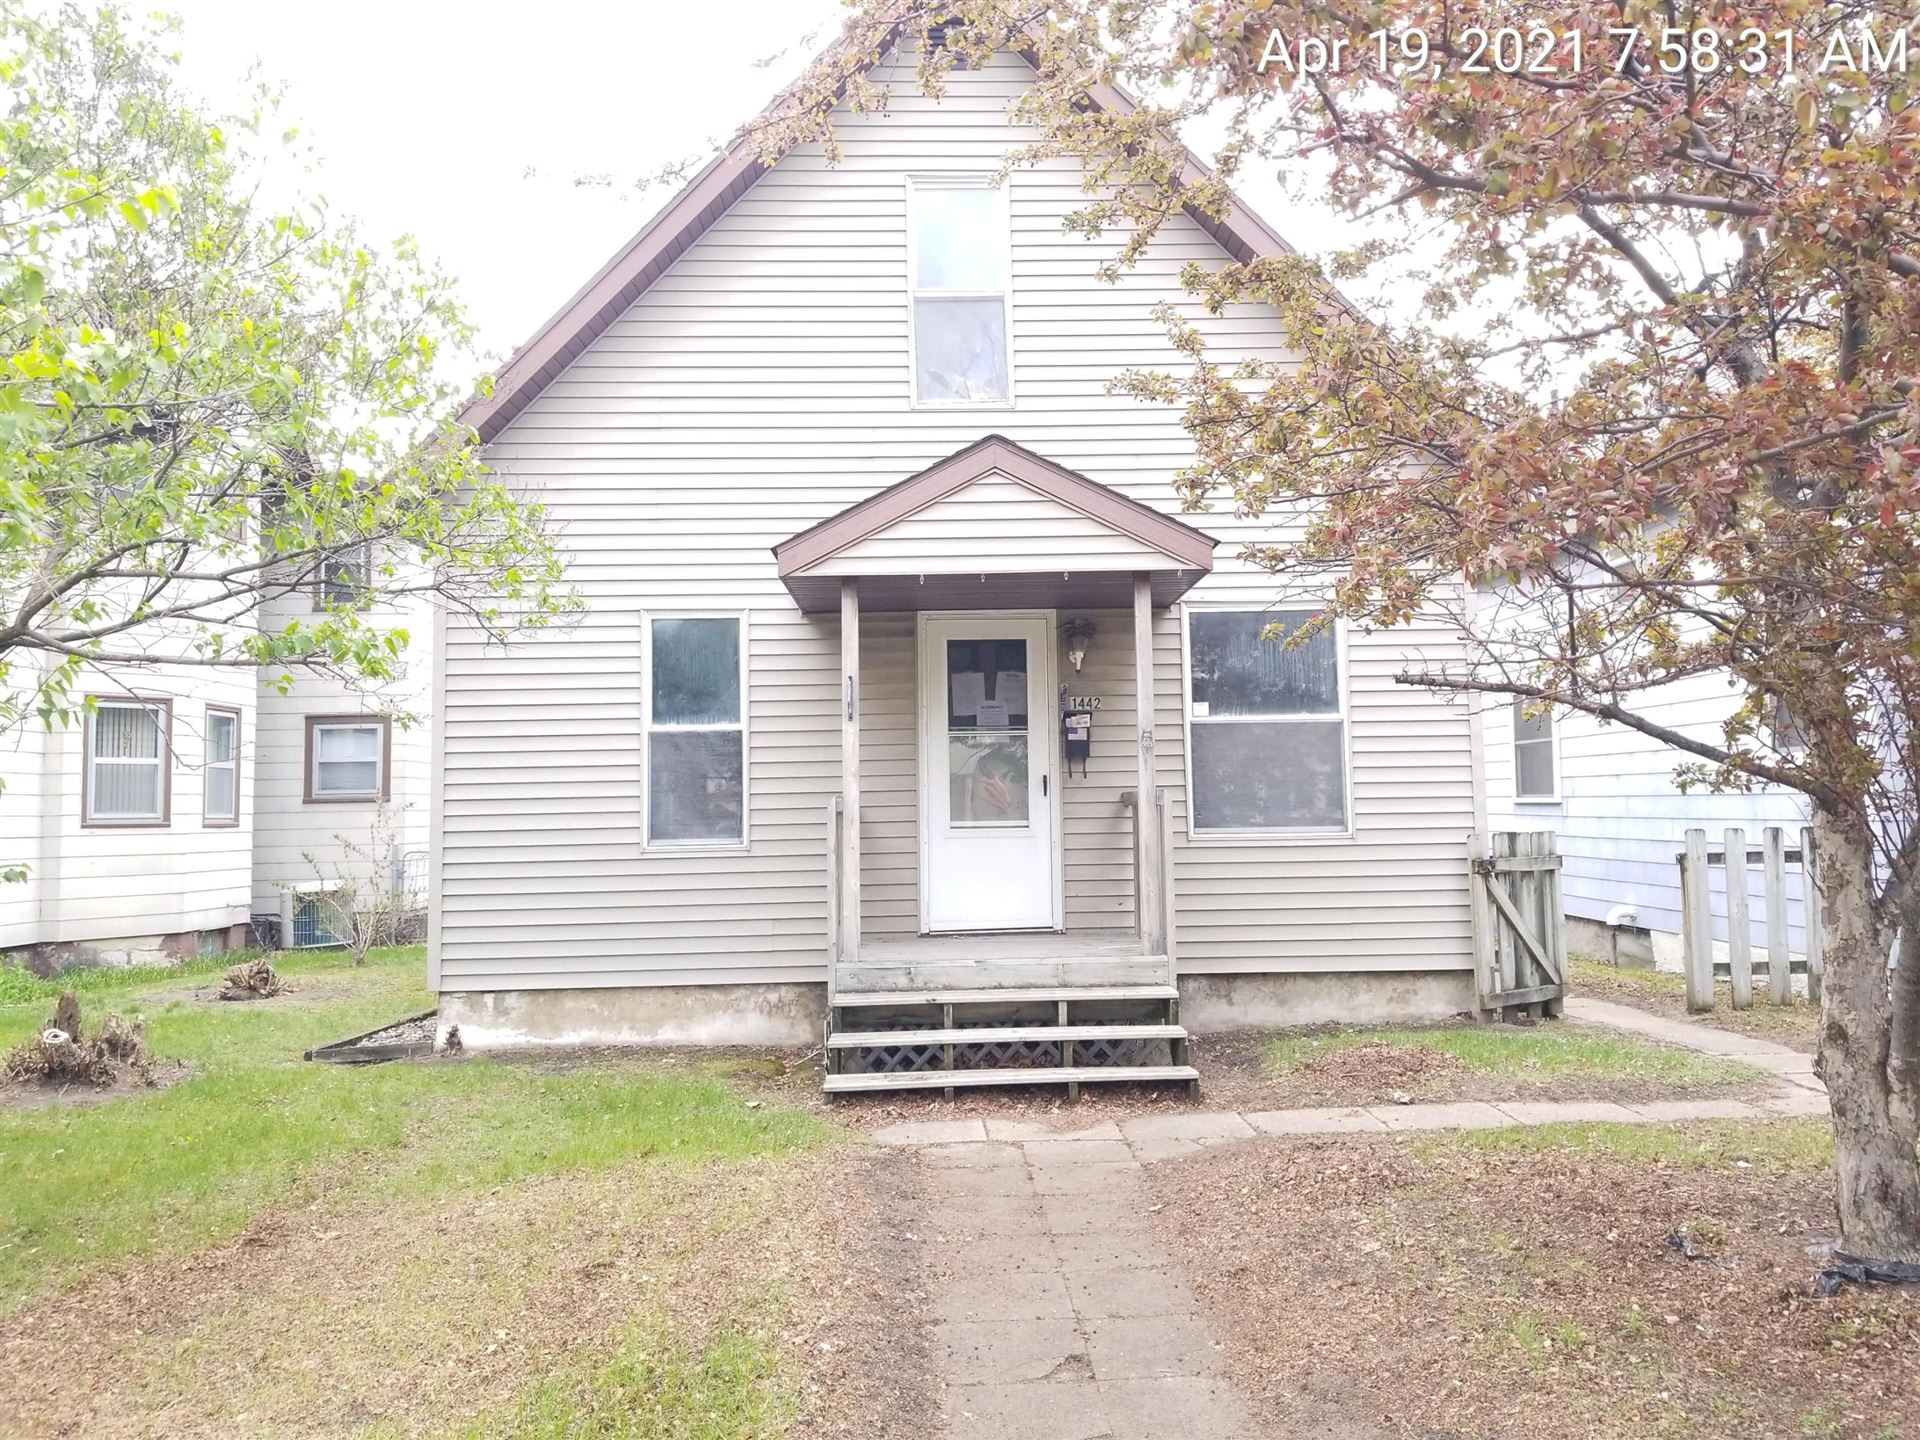 1442 George St, La Crosse, WI 54603 - MLS#: 1736166